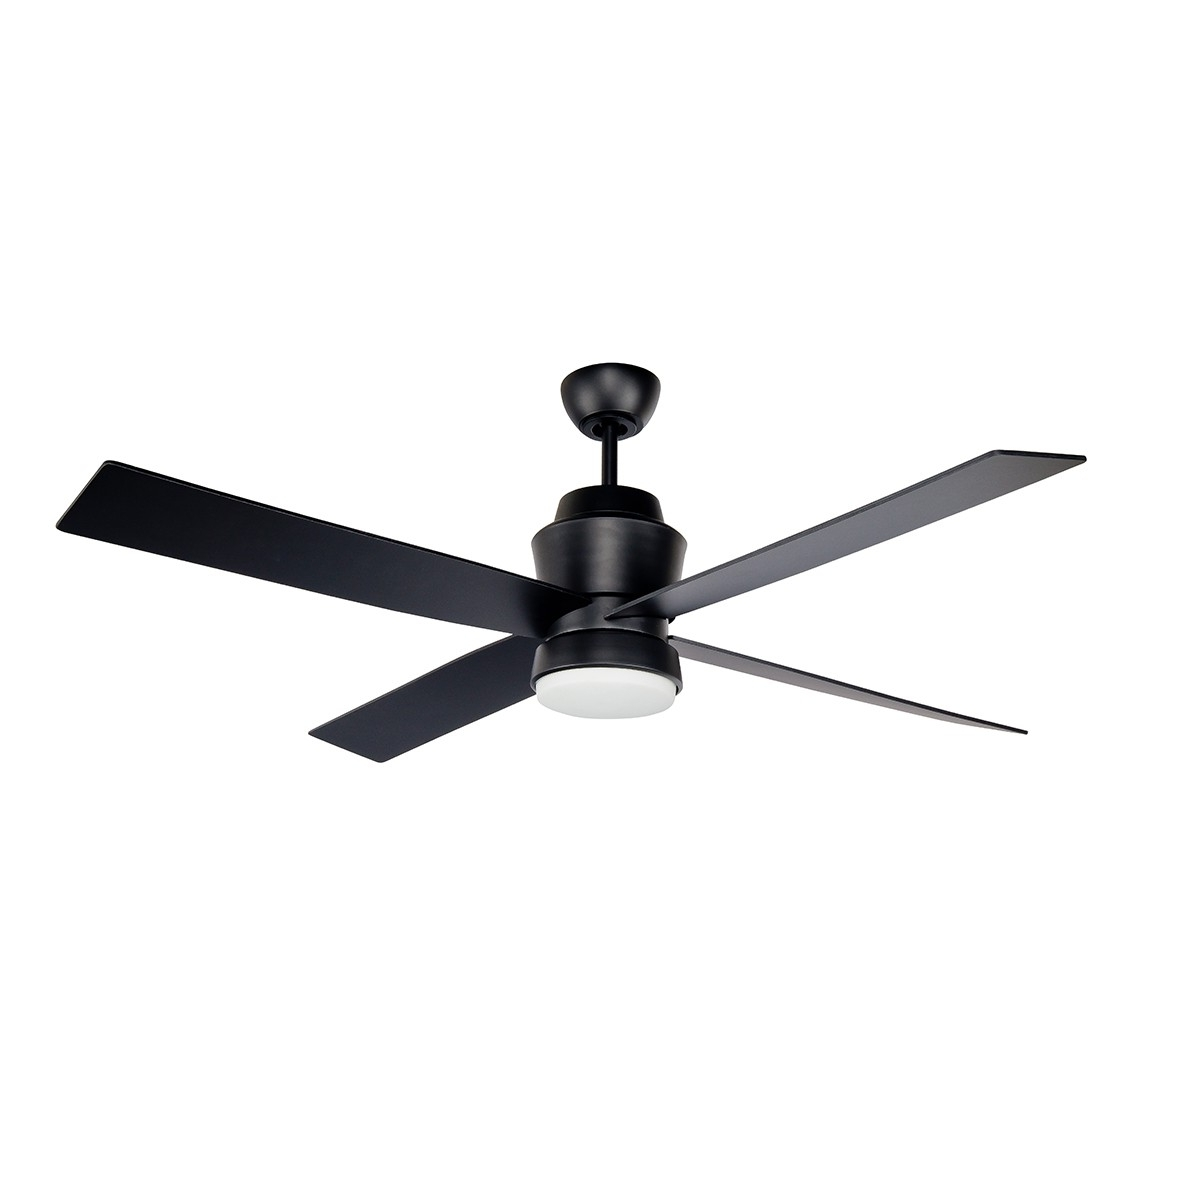 Ceiling Fans : Prologue Outdoor Ceiling Fan Exterior Fans Stori Pertaining To 2018 Black Outdoor Ceiling Fans With Light (View 18 of 20)